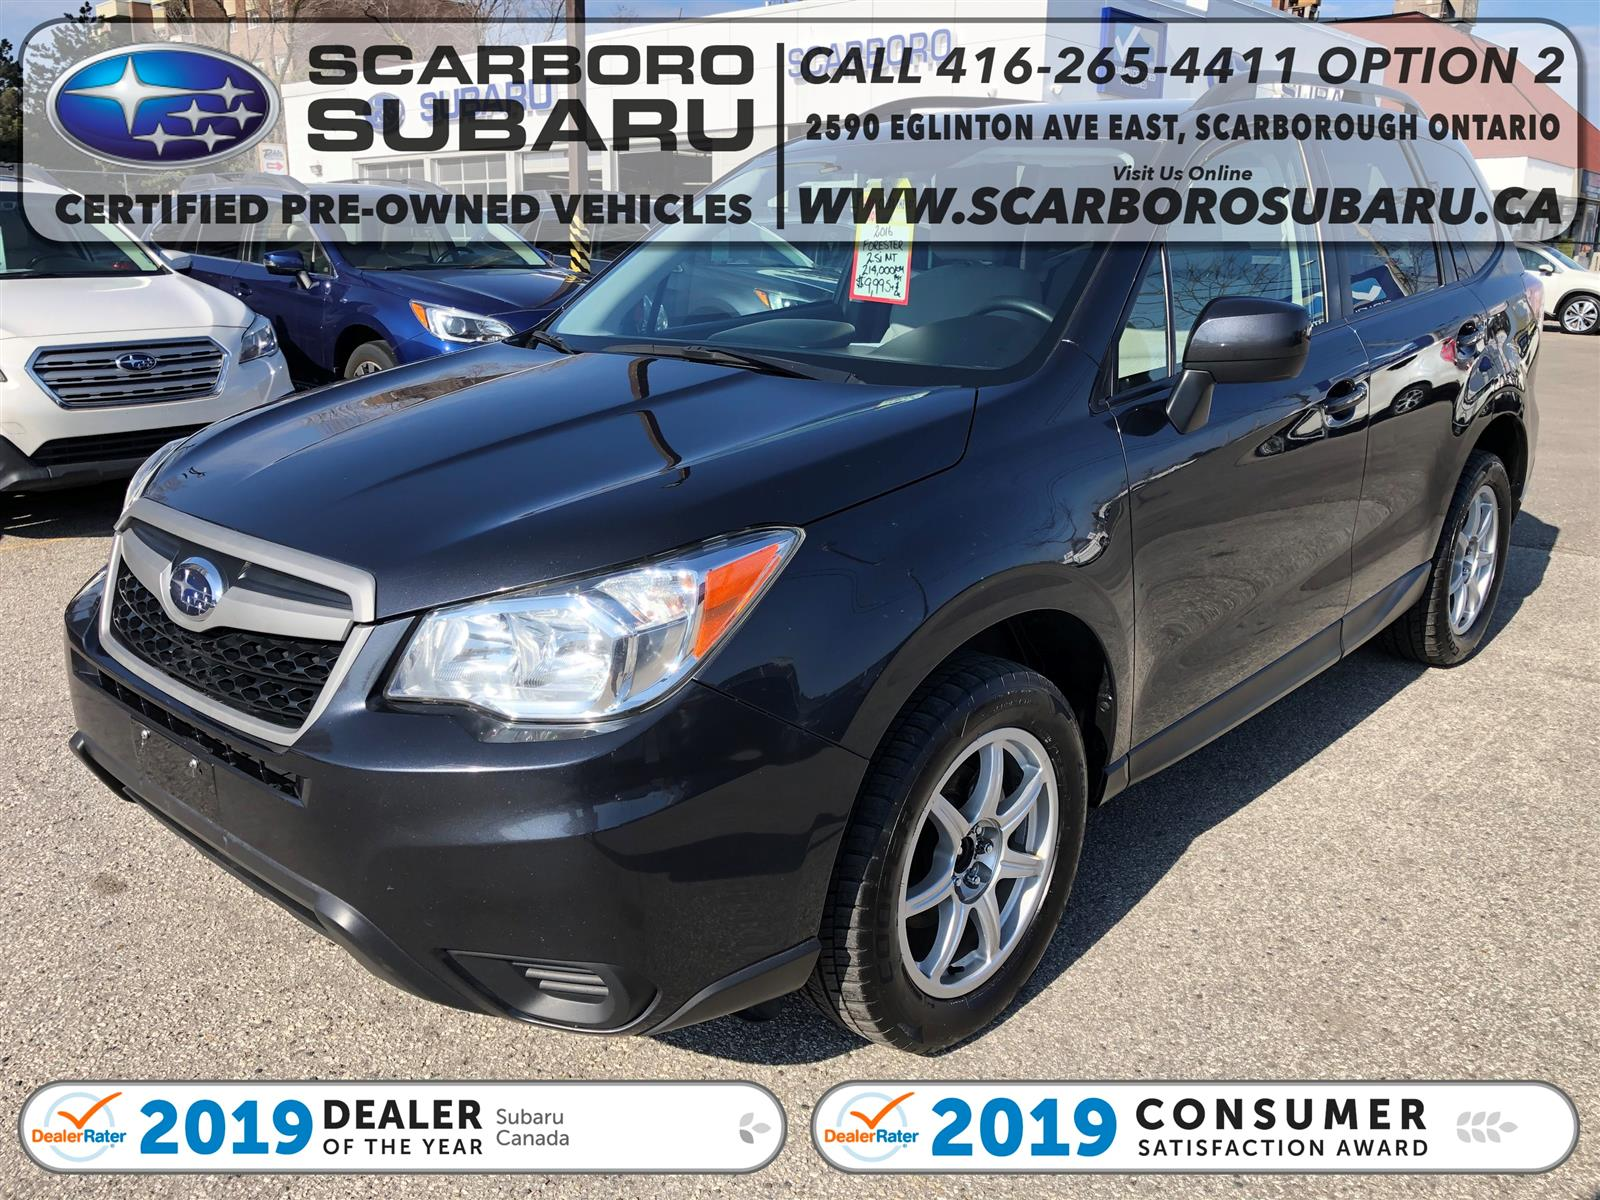 used 2016 Subaru Forester car, priced at $9,995